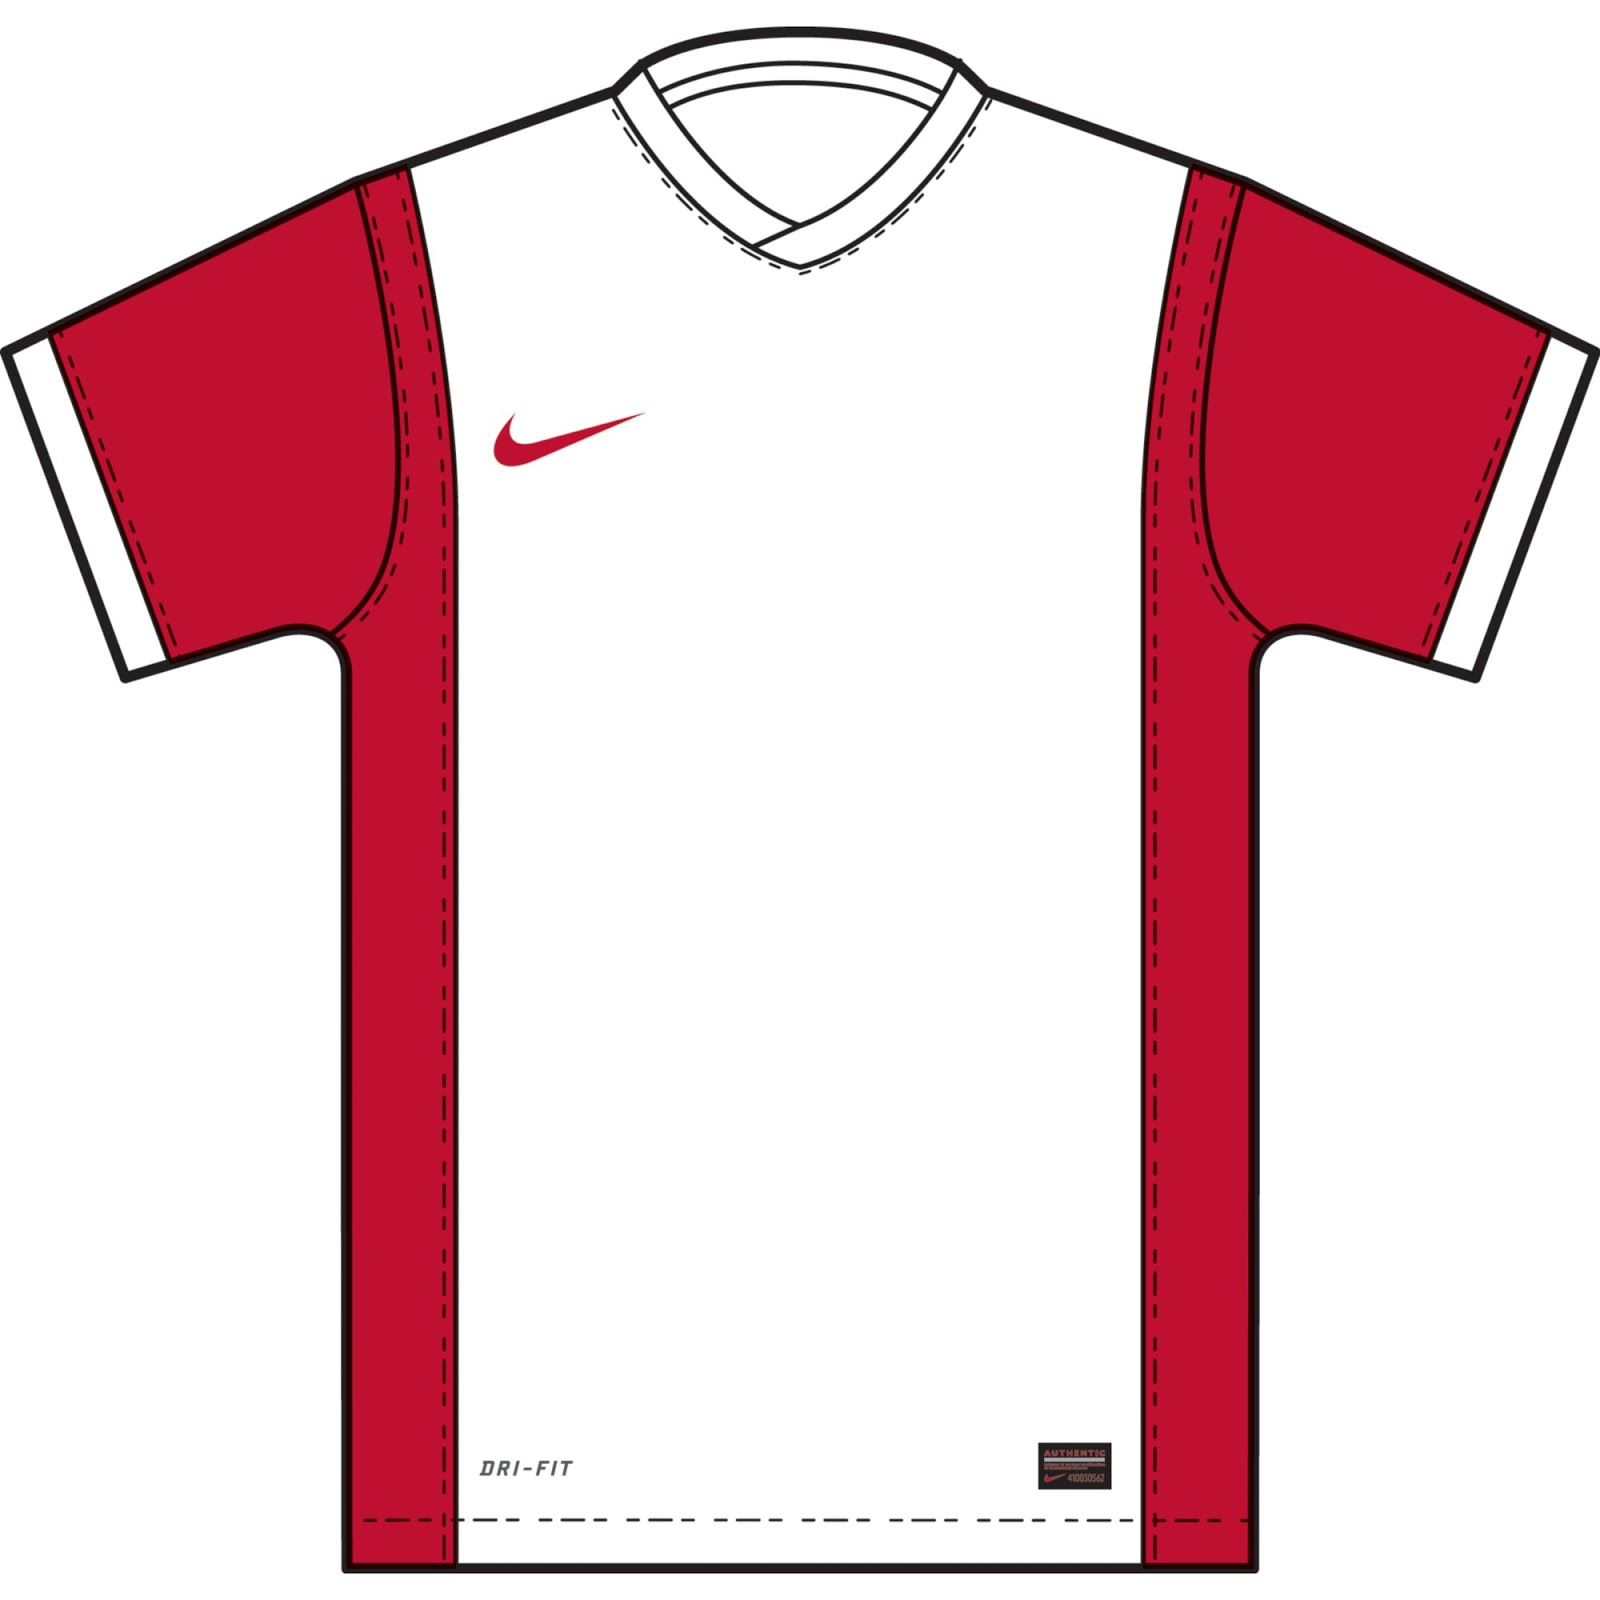 Nike 14 15 teamwear trikots nike 2014 2015 templates for Inter designing